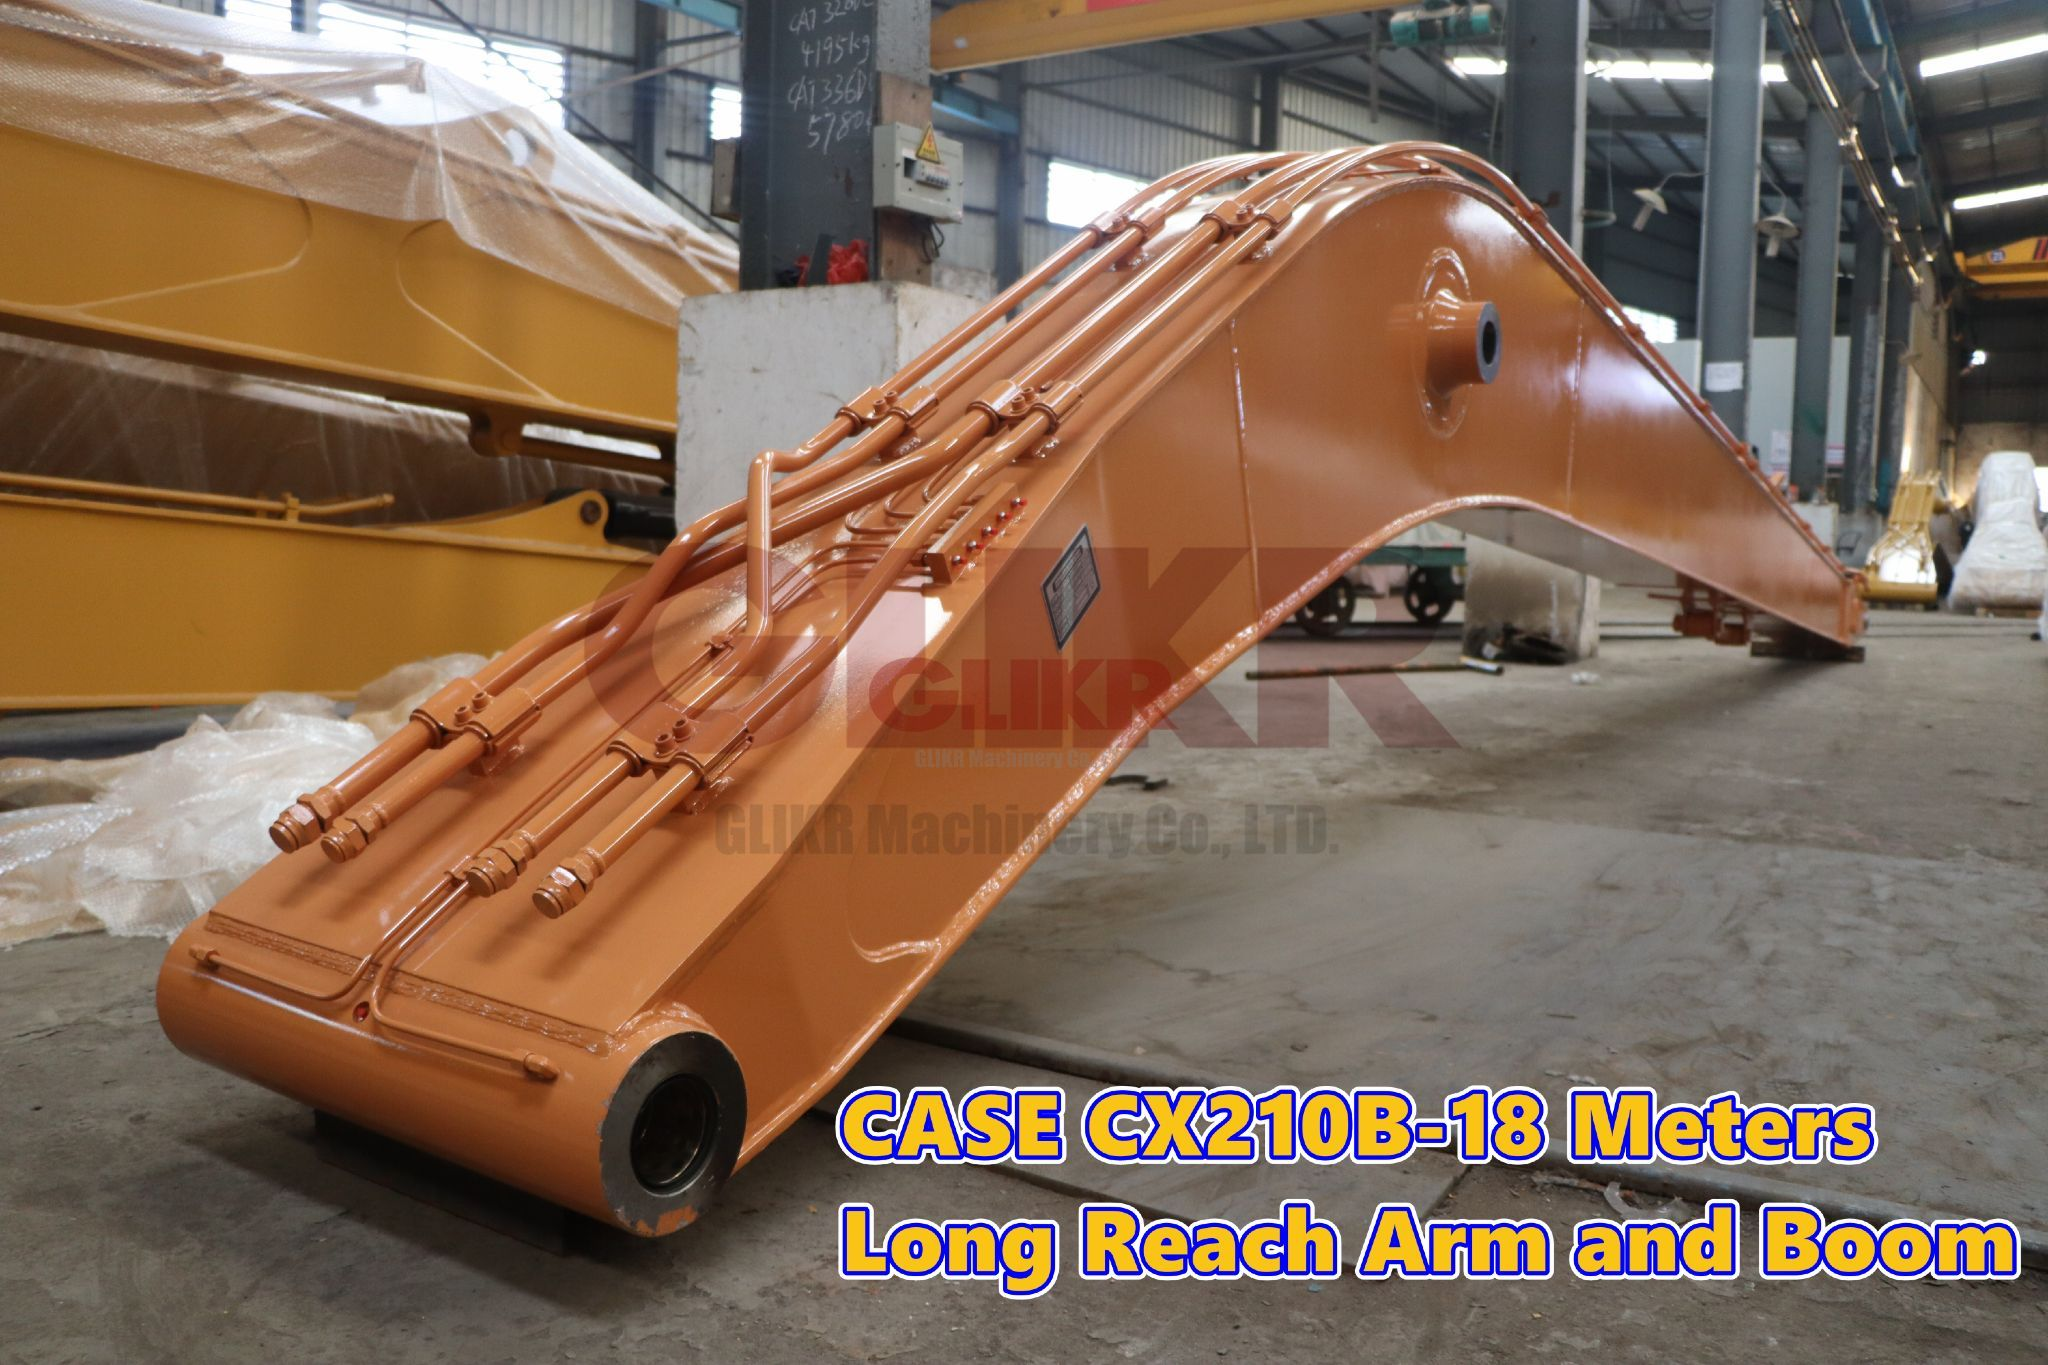 CASE CX210B 18 Meters Long Reach Arm and Boom